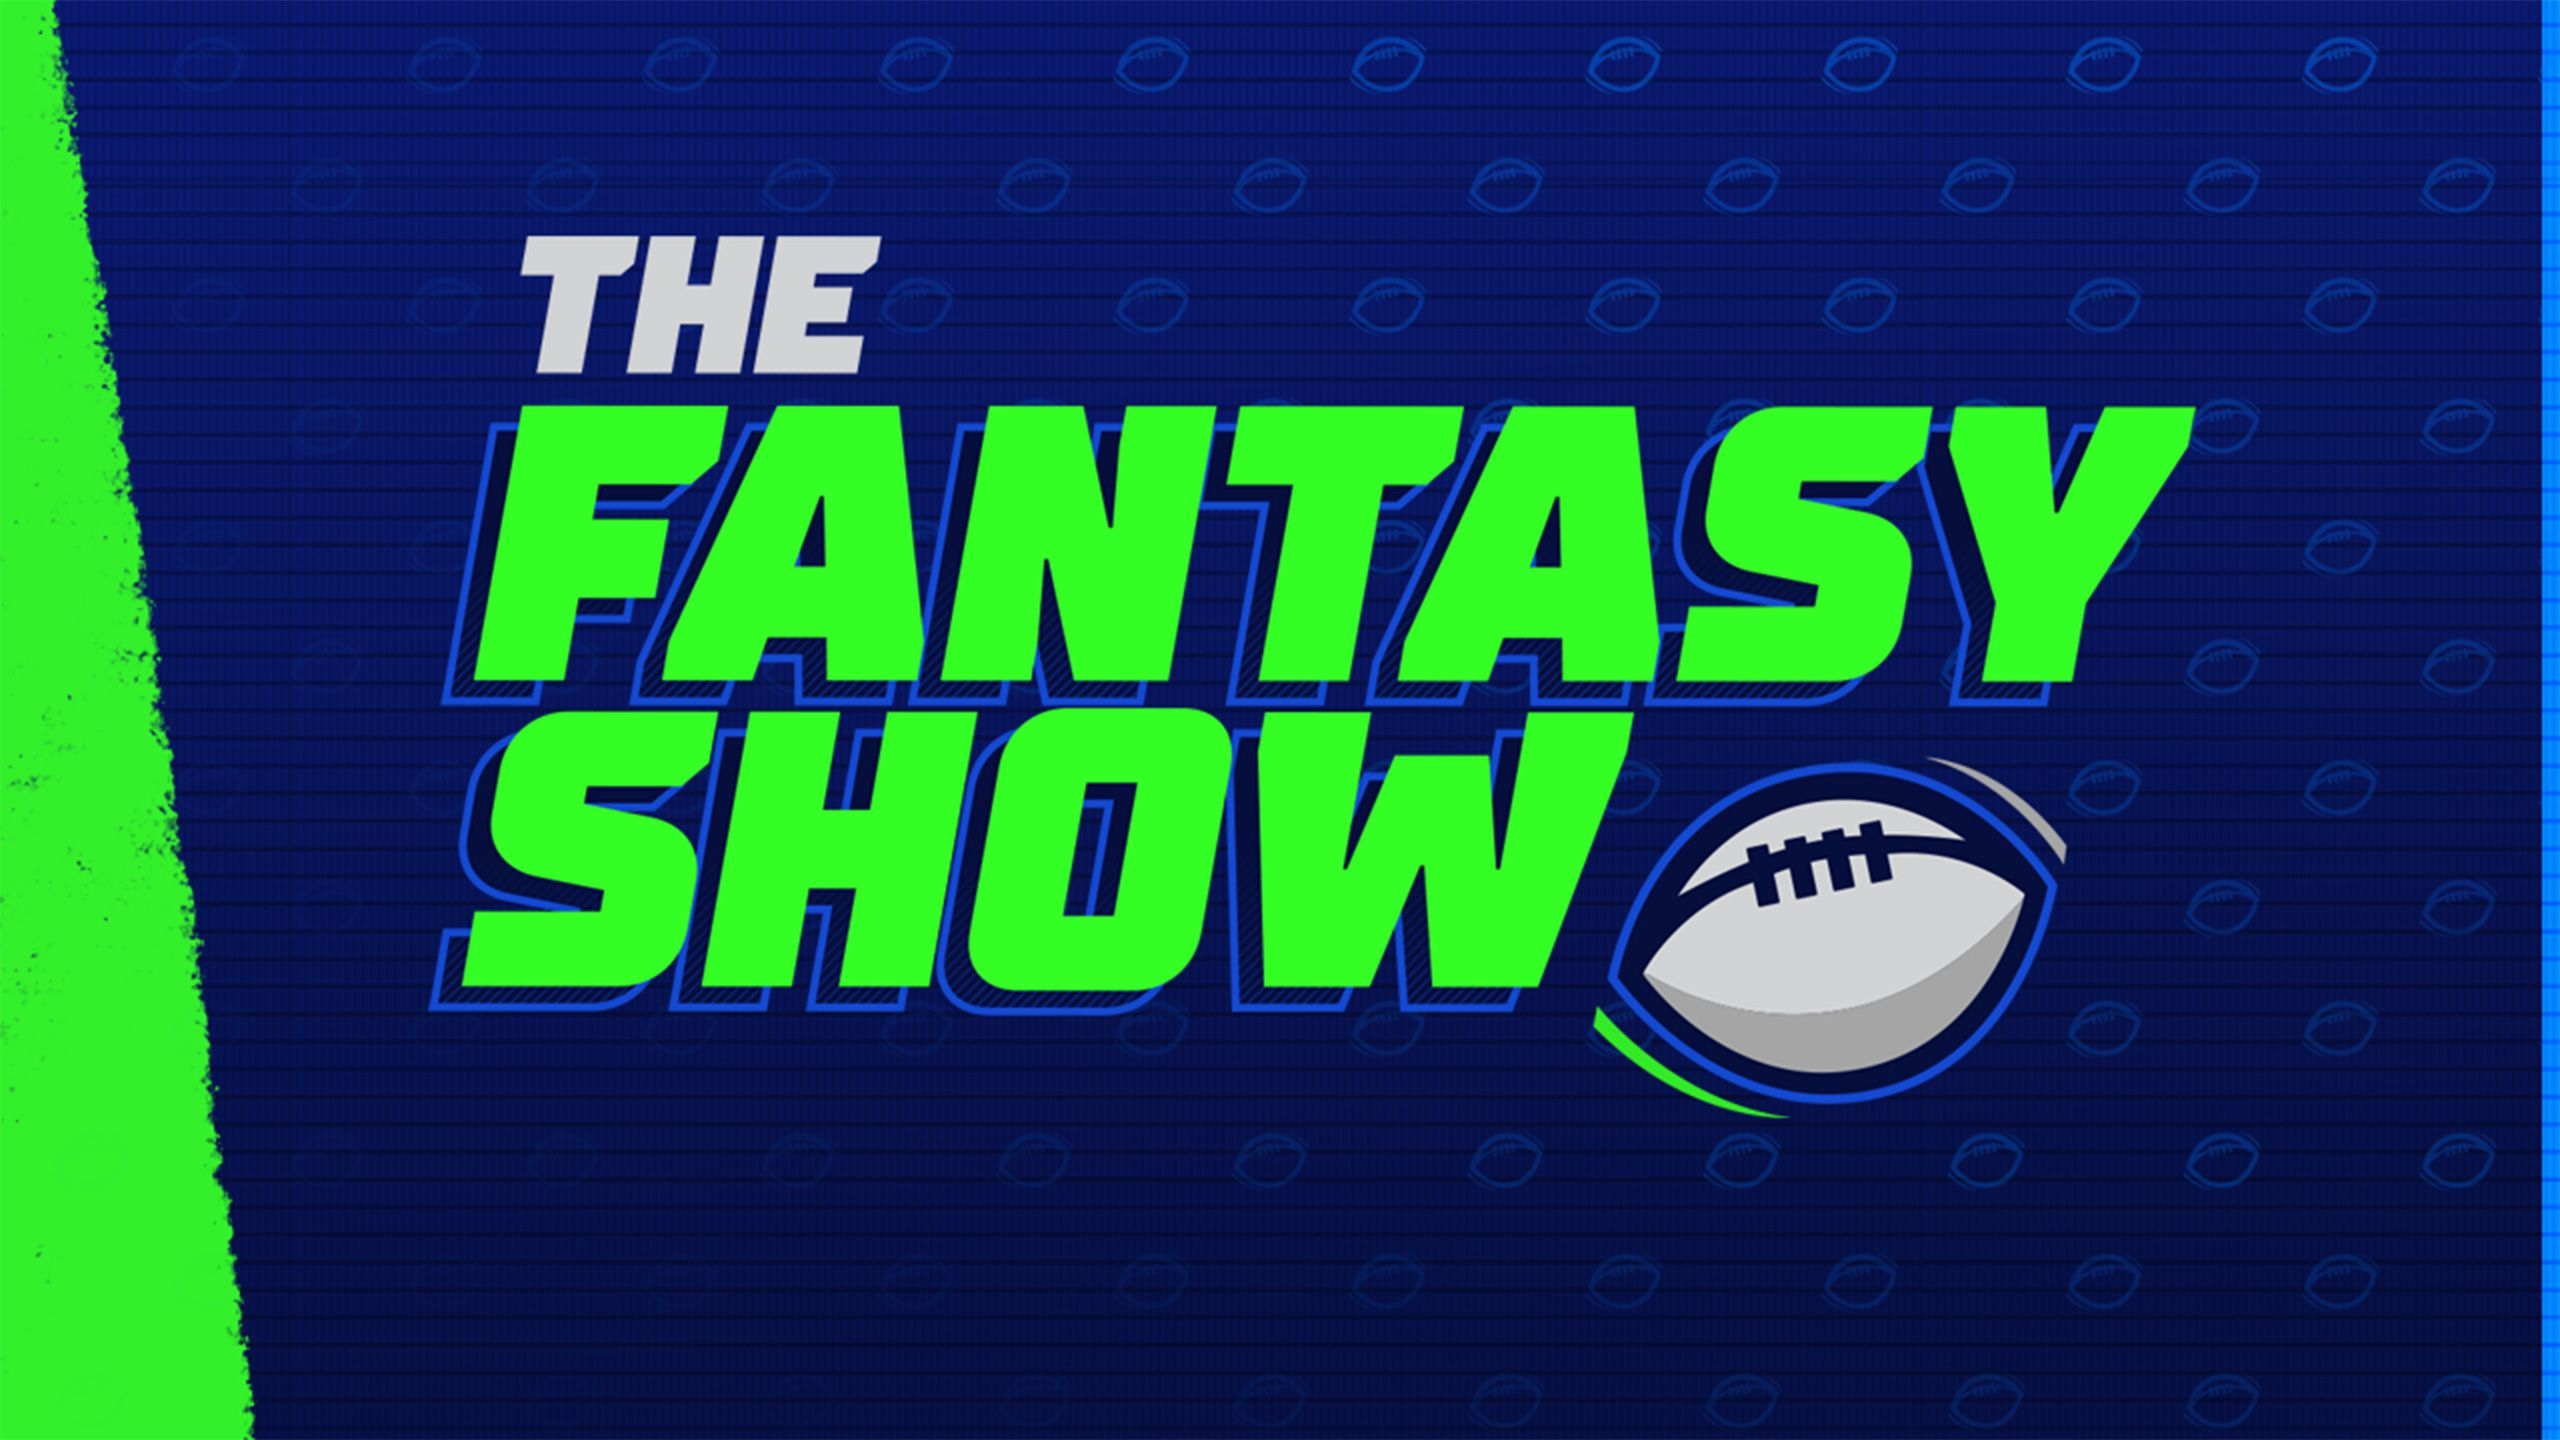 Mon, 10/23 - The Fantasy Show presented by E*Trade